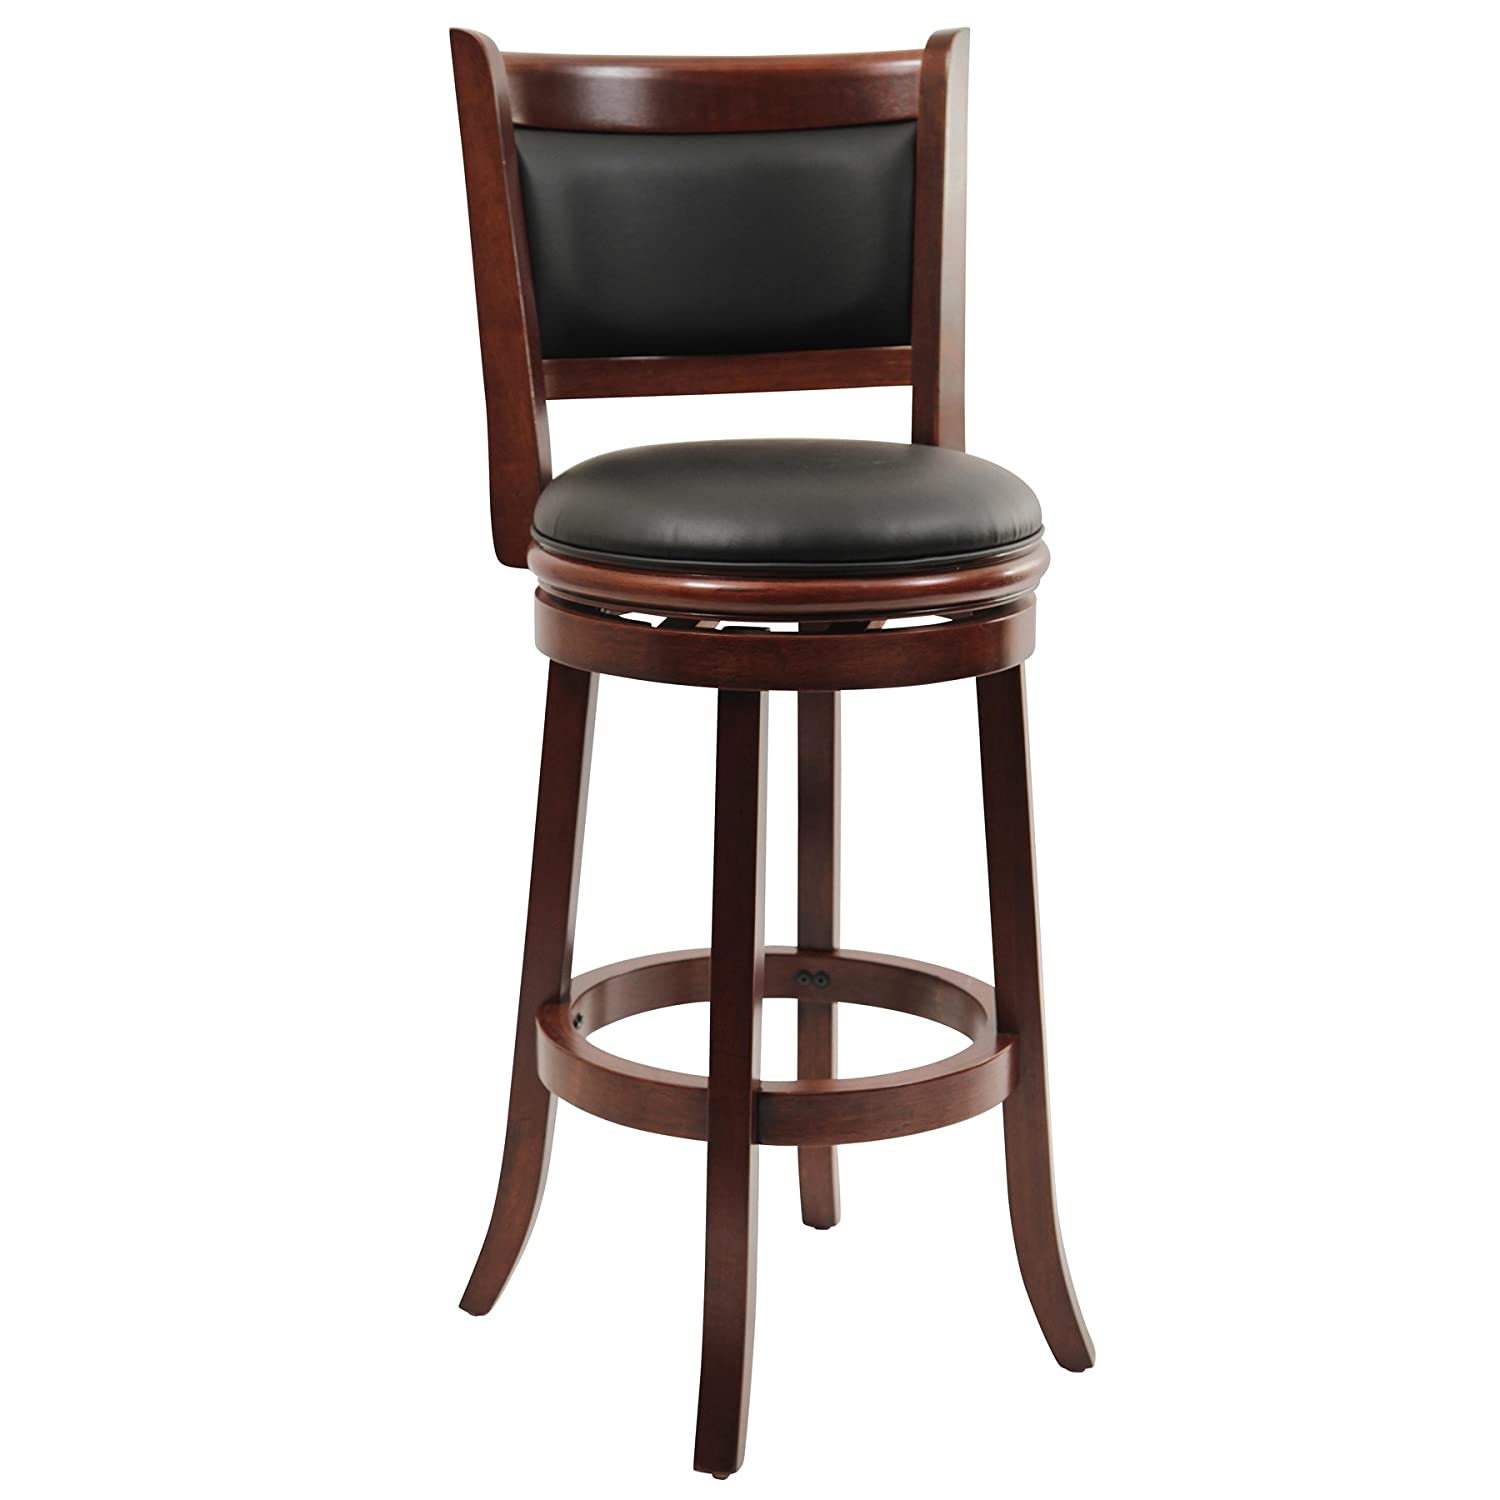 Swell 35 Best Cheap Bar Stools You Can Buy For Under 80 In 2019 Pabps2019 Chair Design Images Pabps2019Com